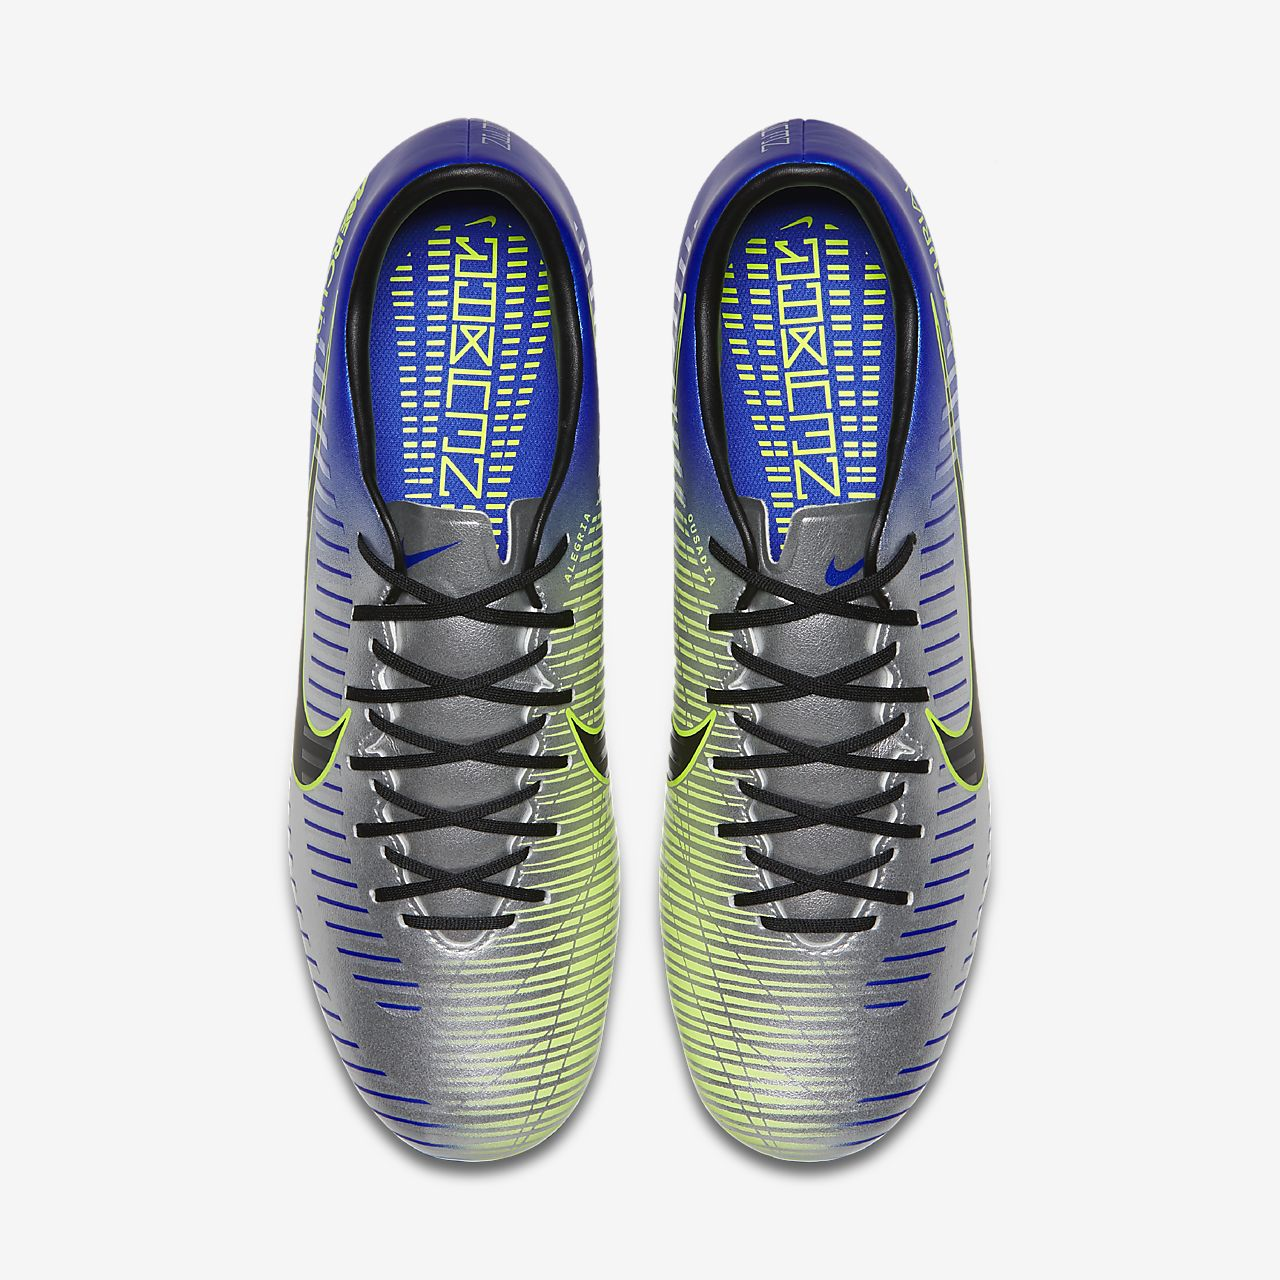 Nike Mercurial Victory VI Dynamic Fit Neymar Firm-Ground Men's Football Boots Blue/Violet/Black oN37